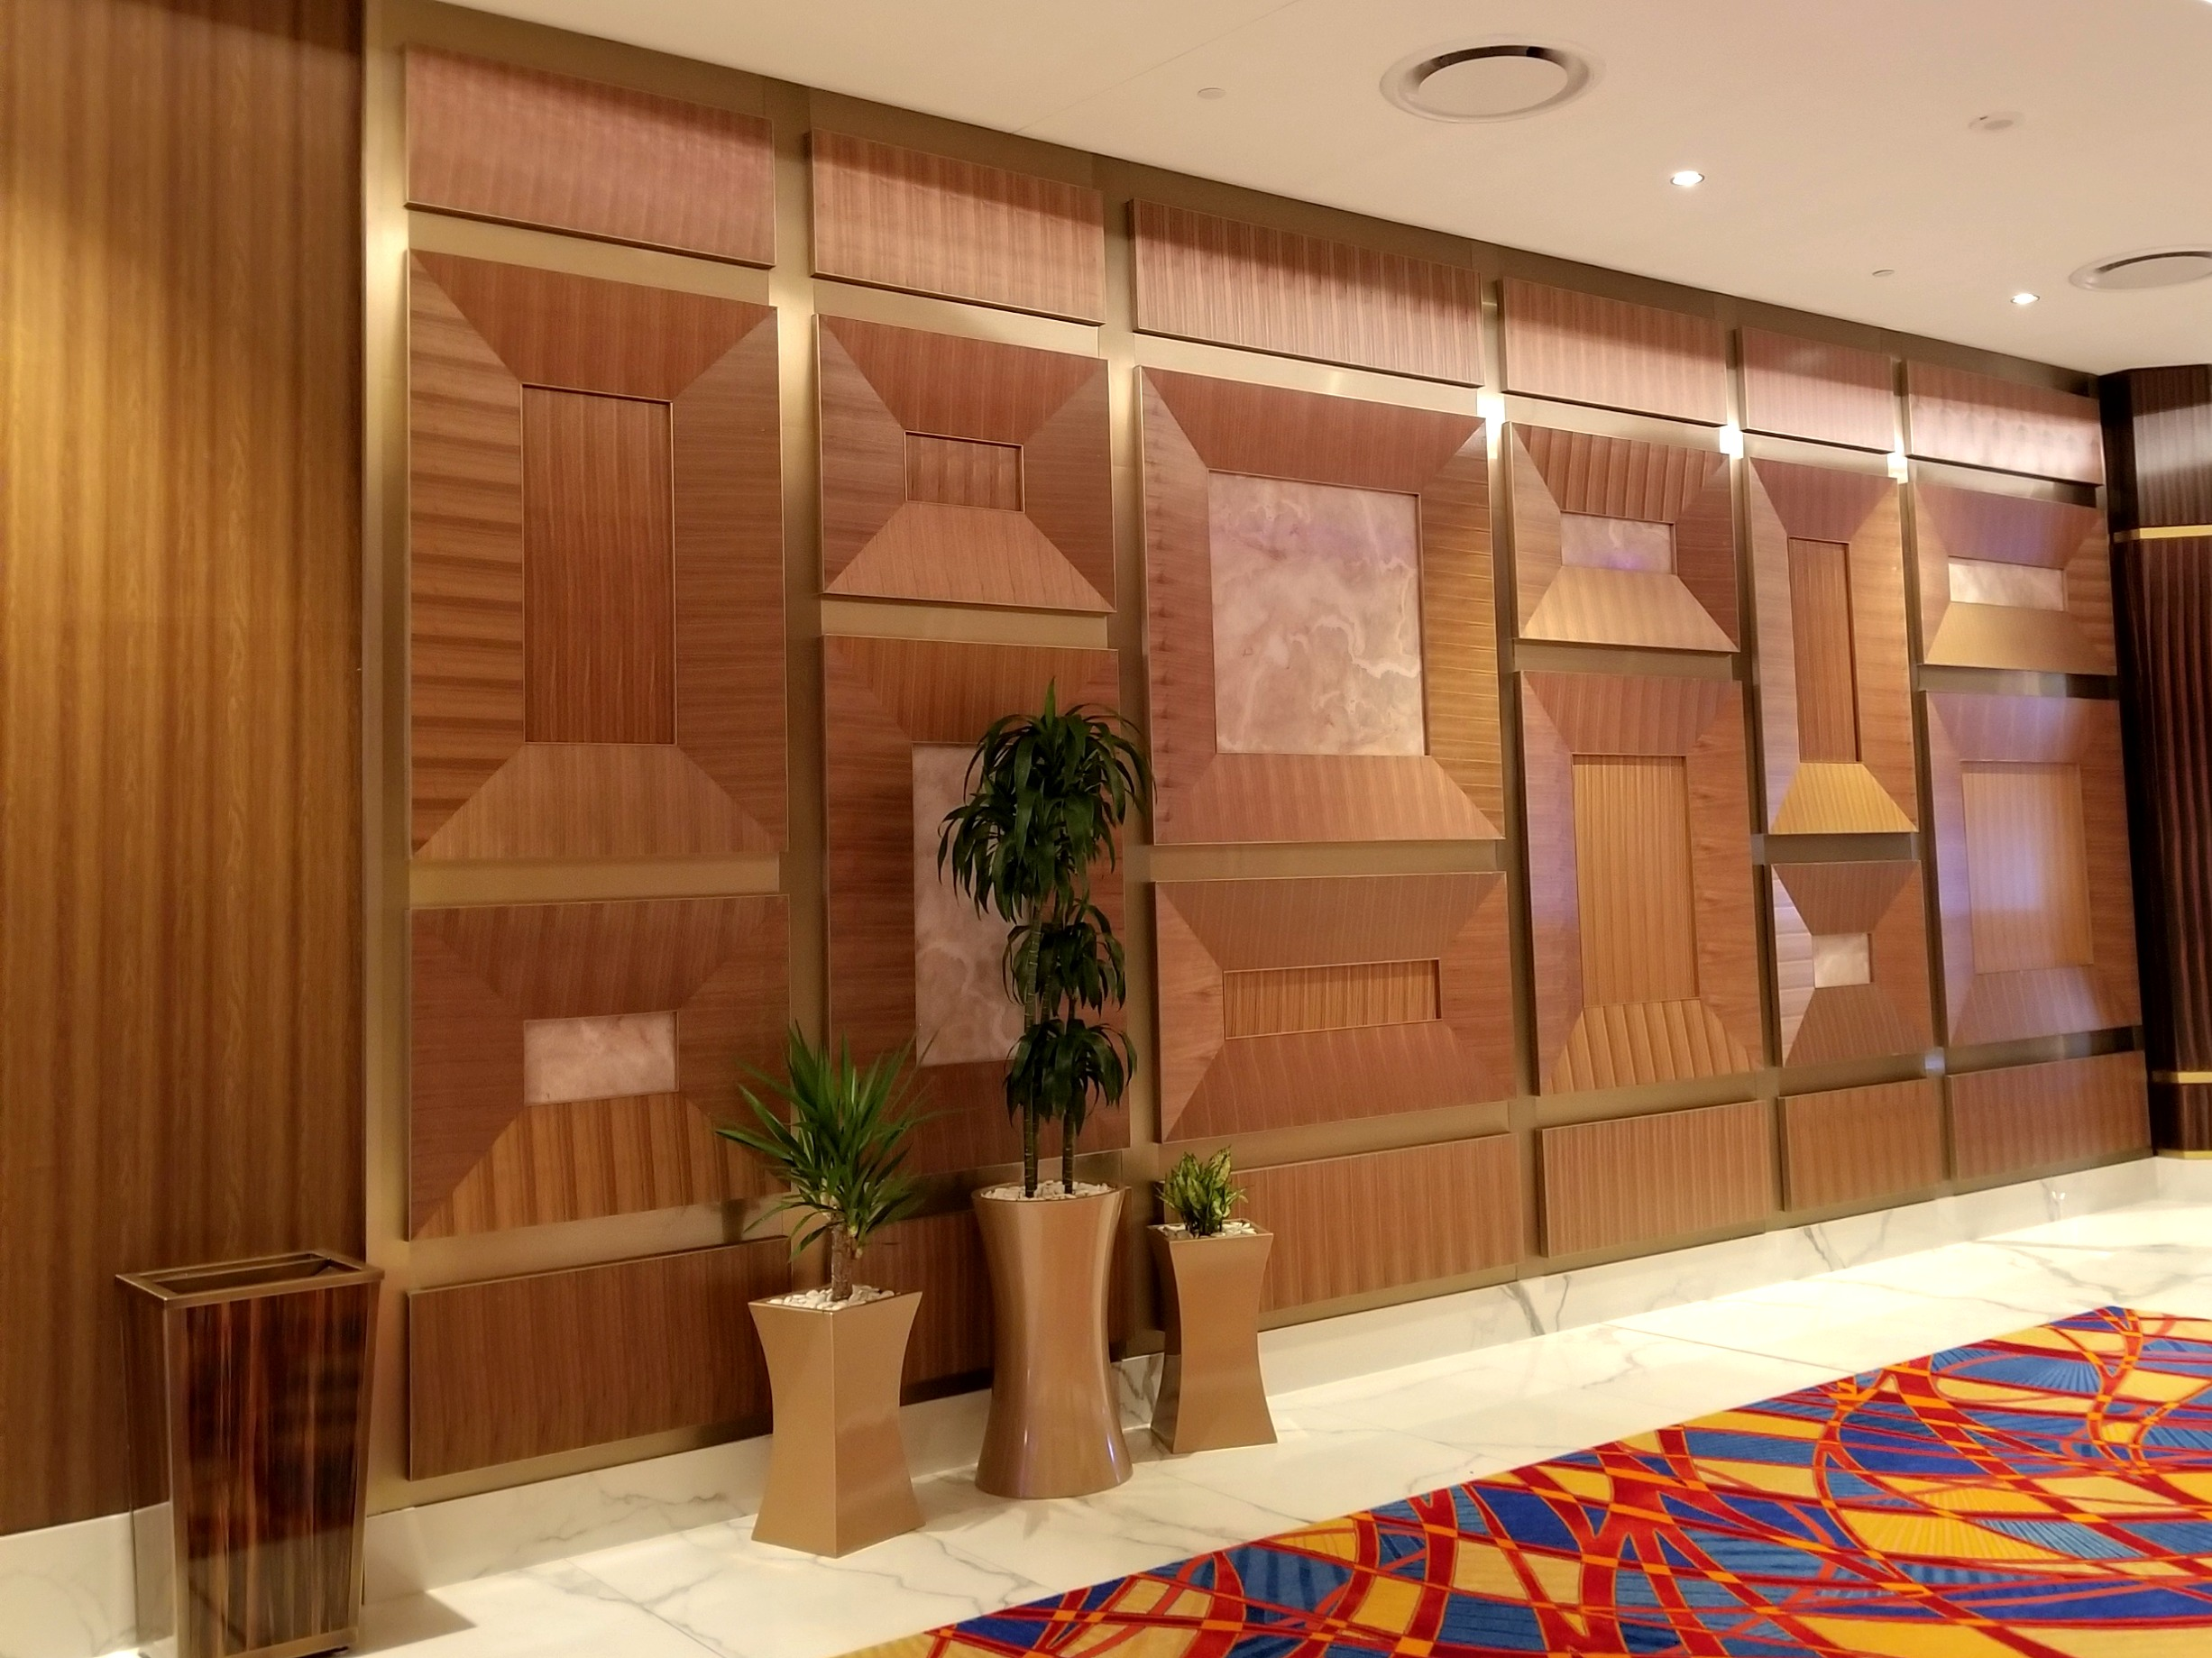 Designed and manufactured walnut veneer wall